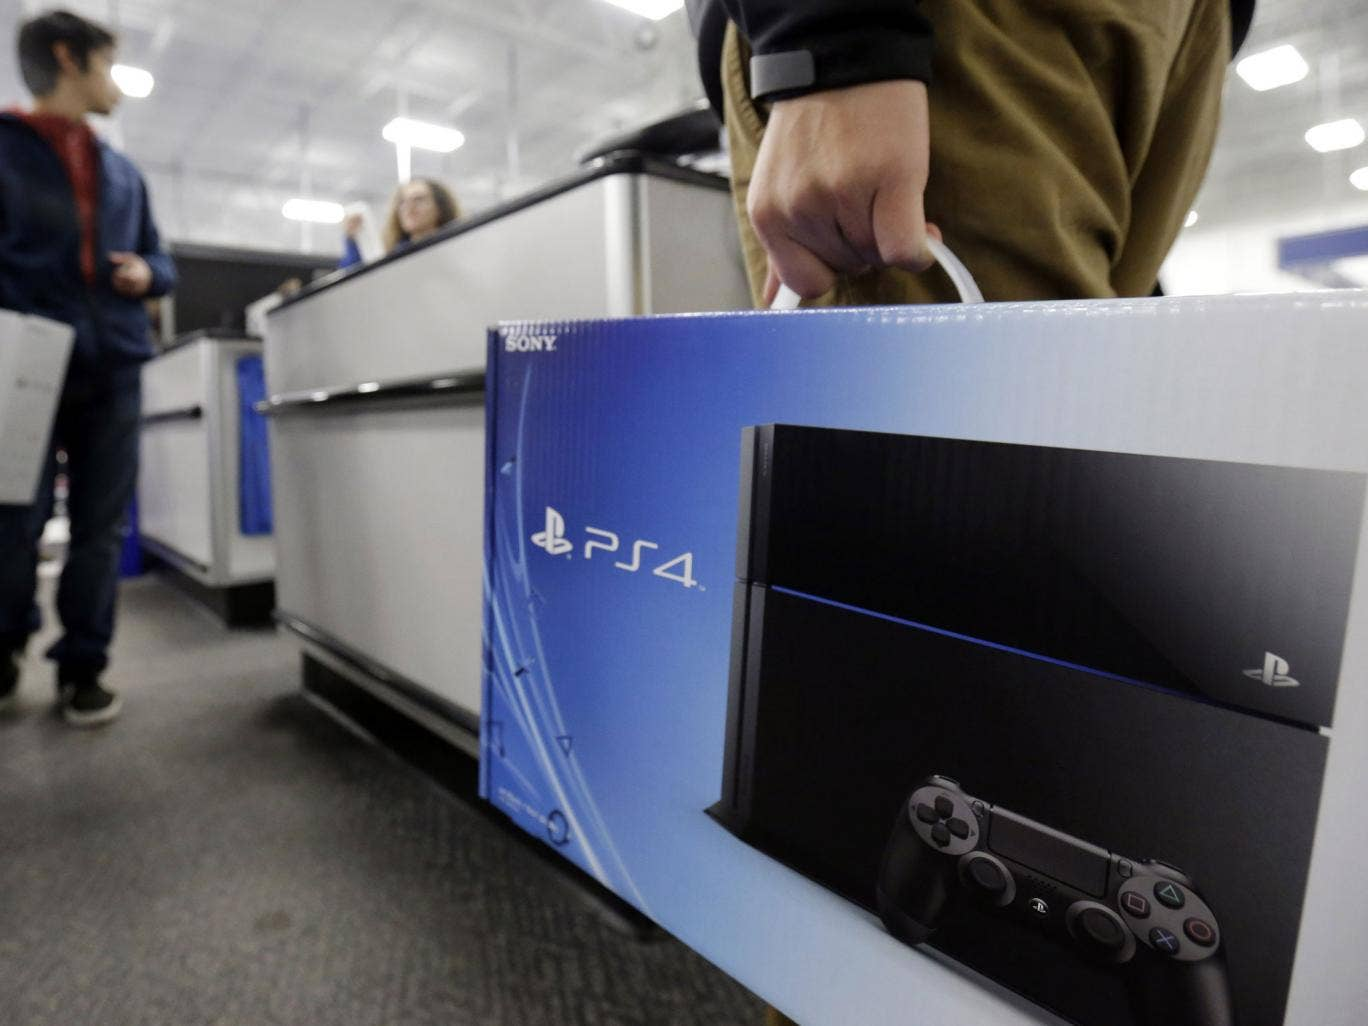 The Playstation 4 console retails for £349 – £80 less than its rival Microsoft's Xbox One system